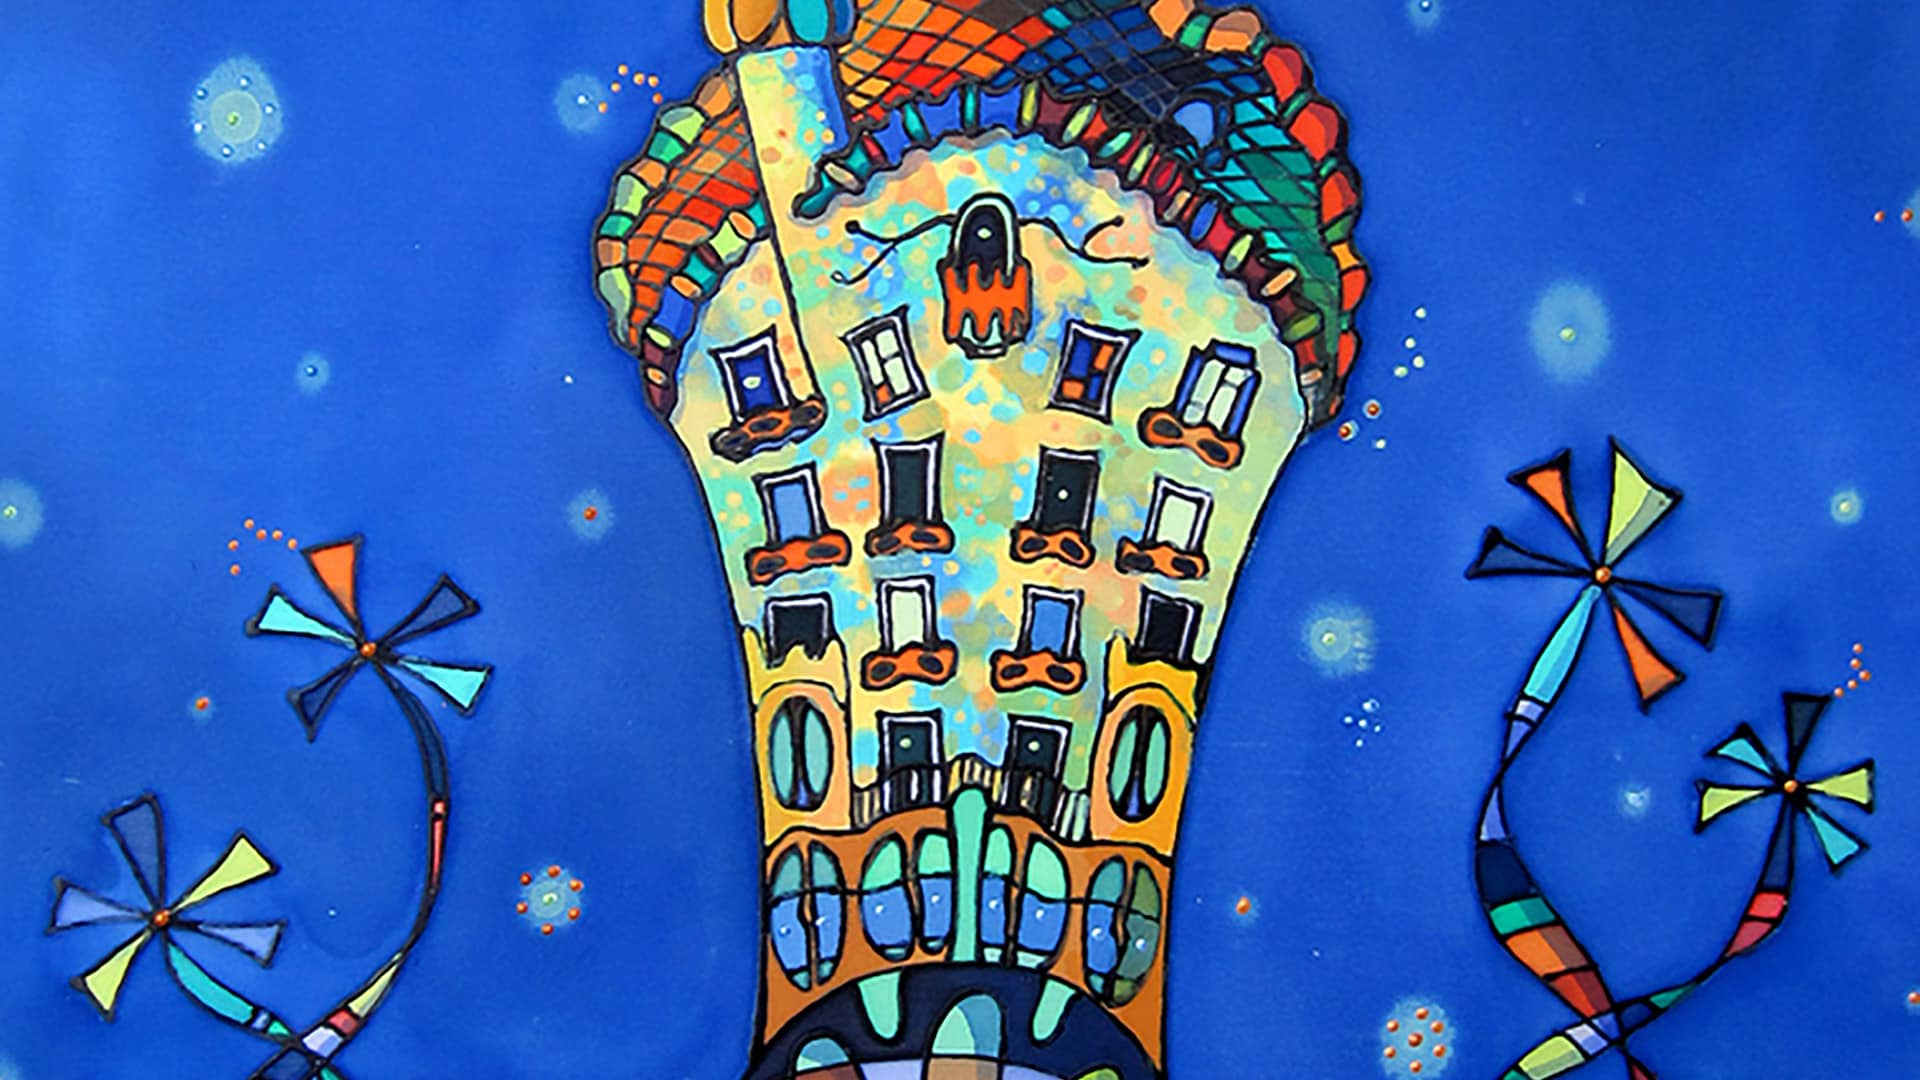 he Casa Batlló artwork by Anna Font, Barcelona